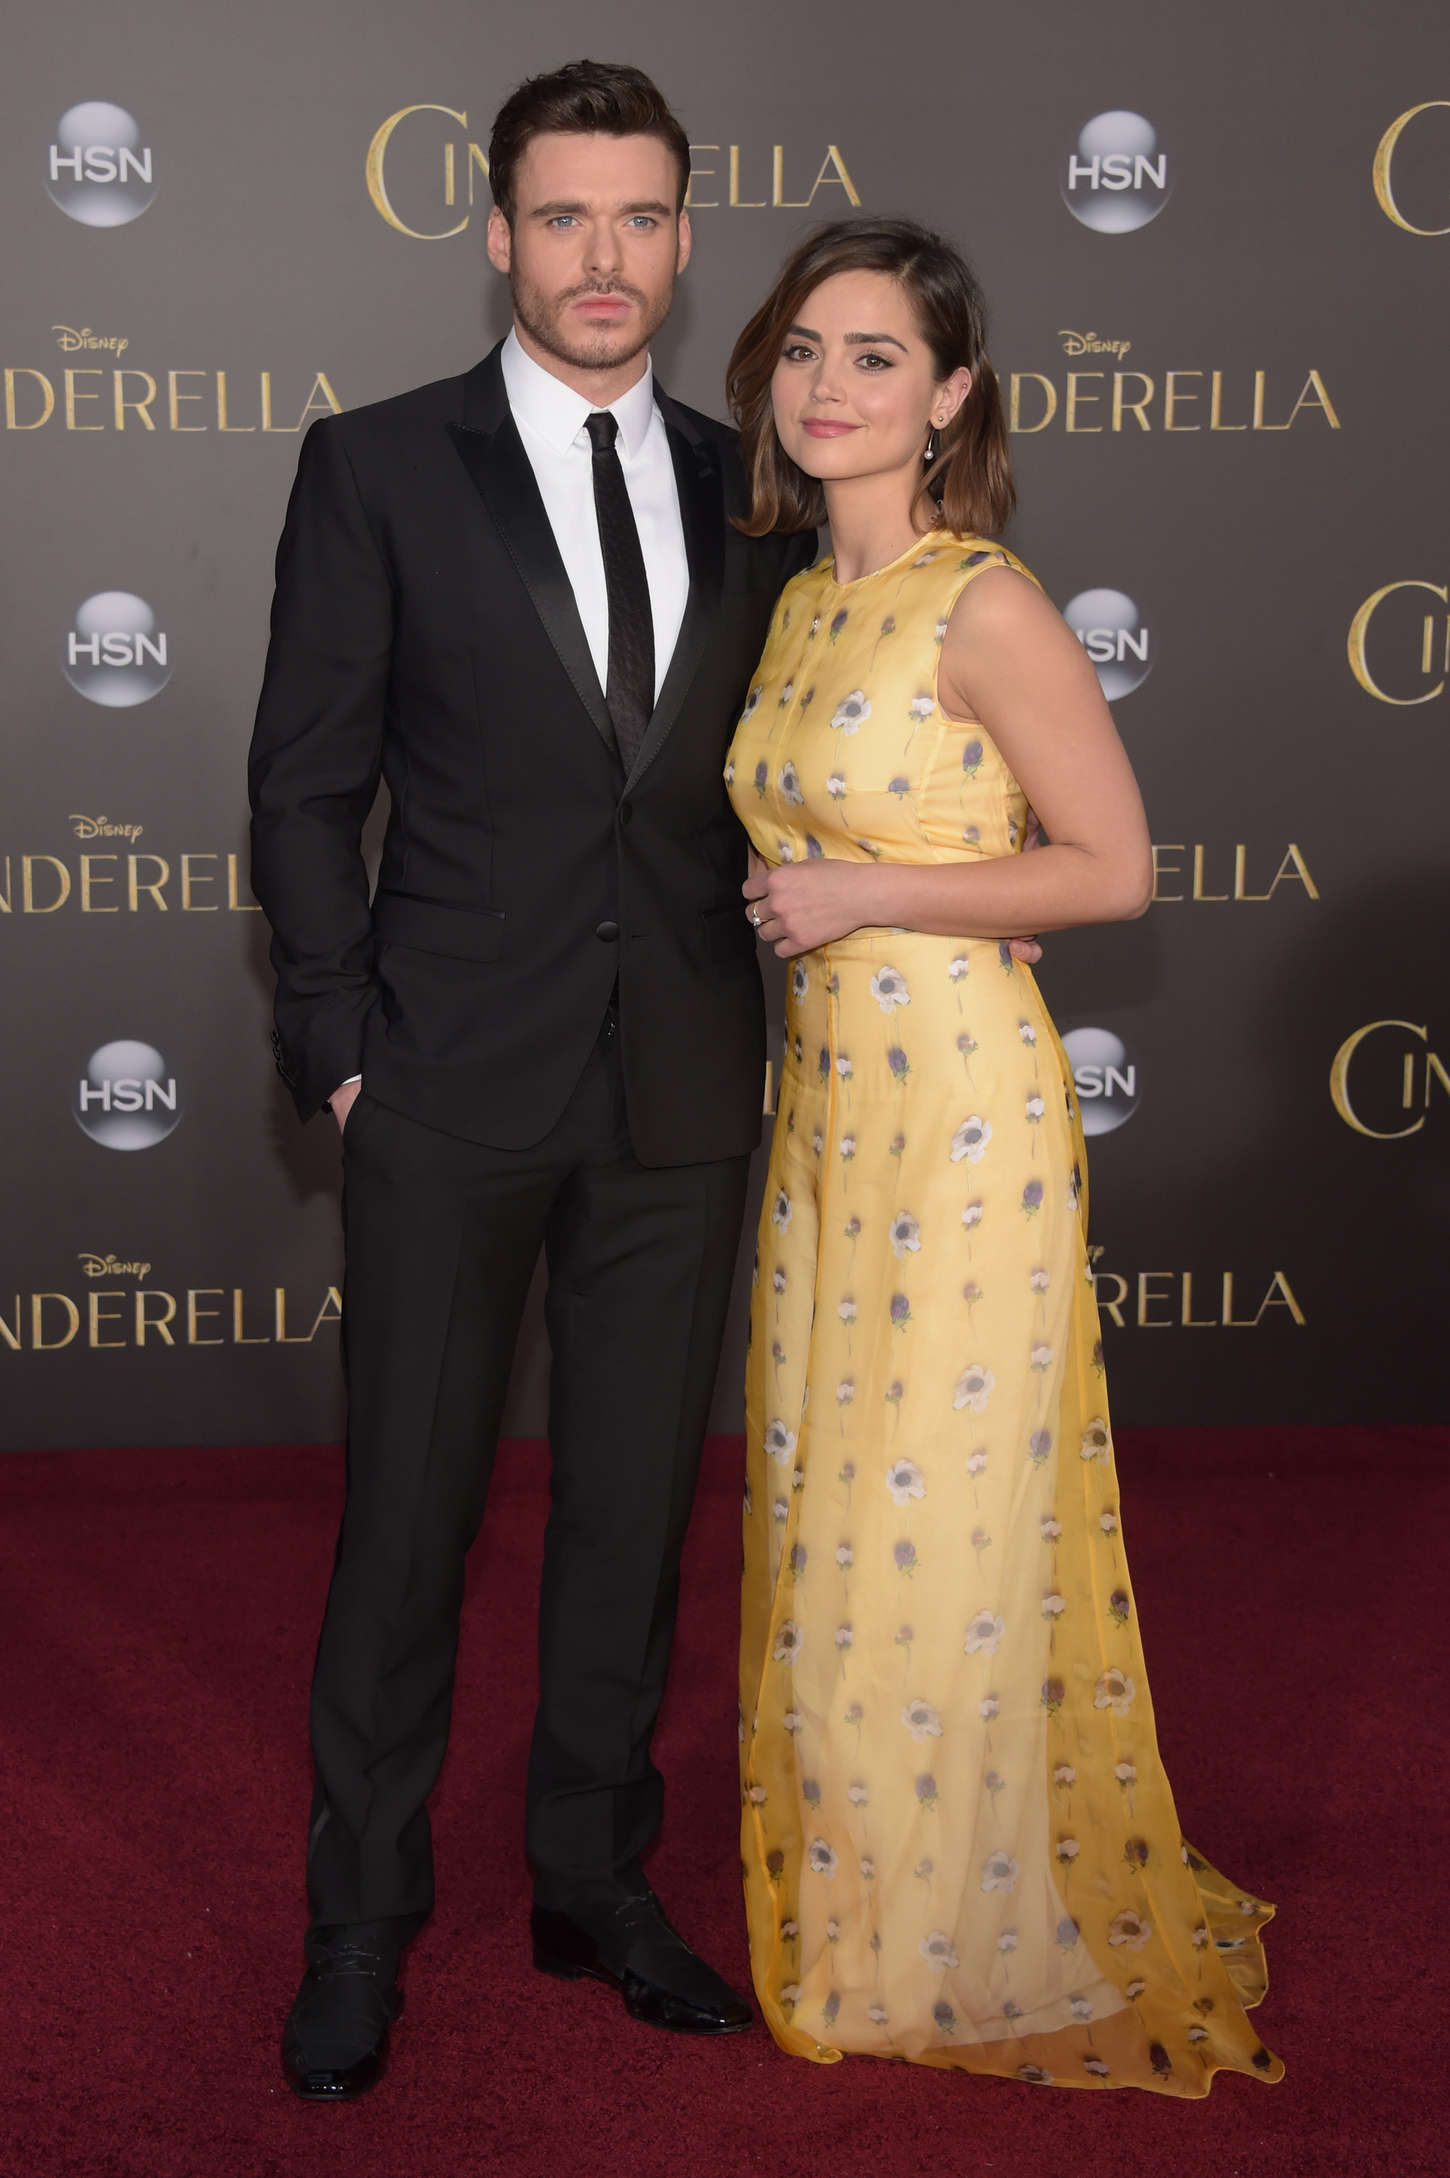 Jenna Louise Coleman Cinderella Premiere in Hollywood